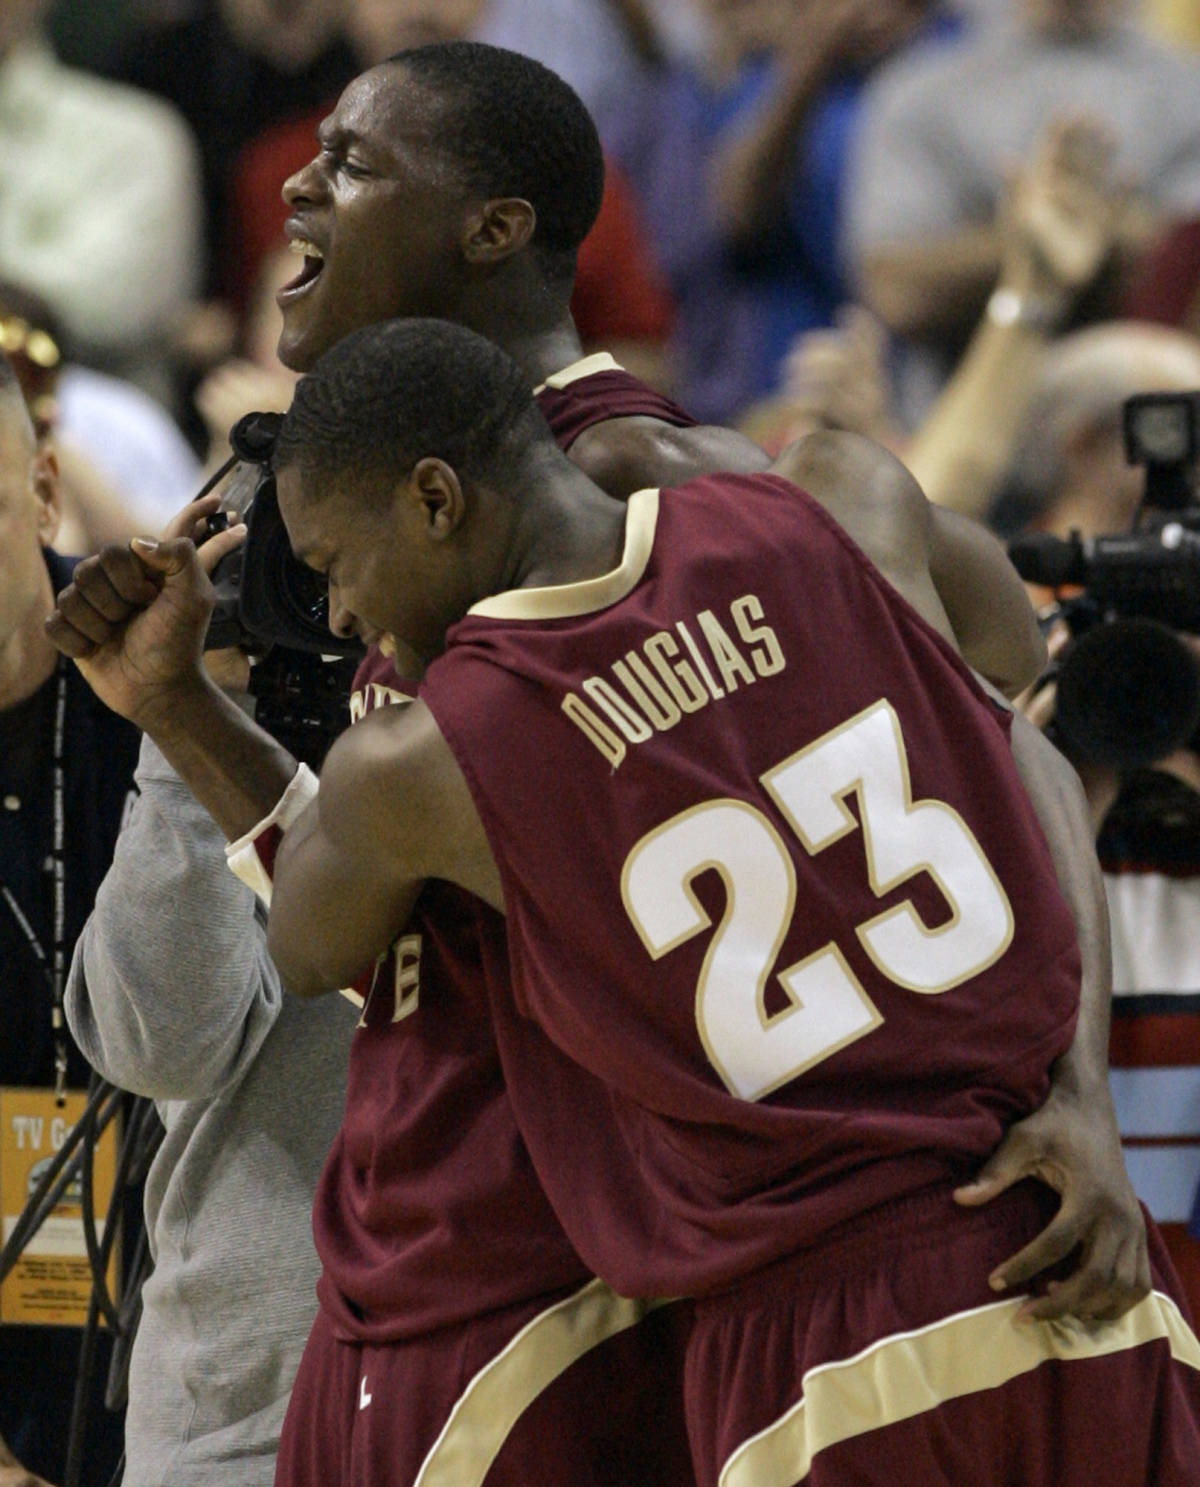 Florida State's Toney Douglas (23) hugs Al Thornton after beating Clemson 67-66 in a first round game of the Men's Atlantic Coast Conference basketball tournament in Tampa, Fla., Thursday, March 8, 2007. Thornton scored 25 points, including the game-winning free throw. (AP Photo/John Raoux)